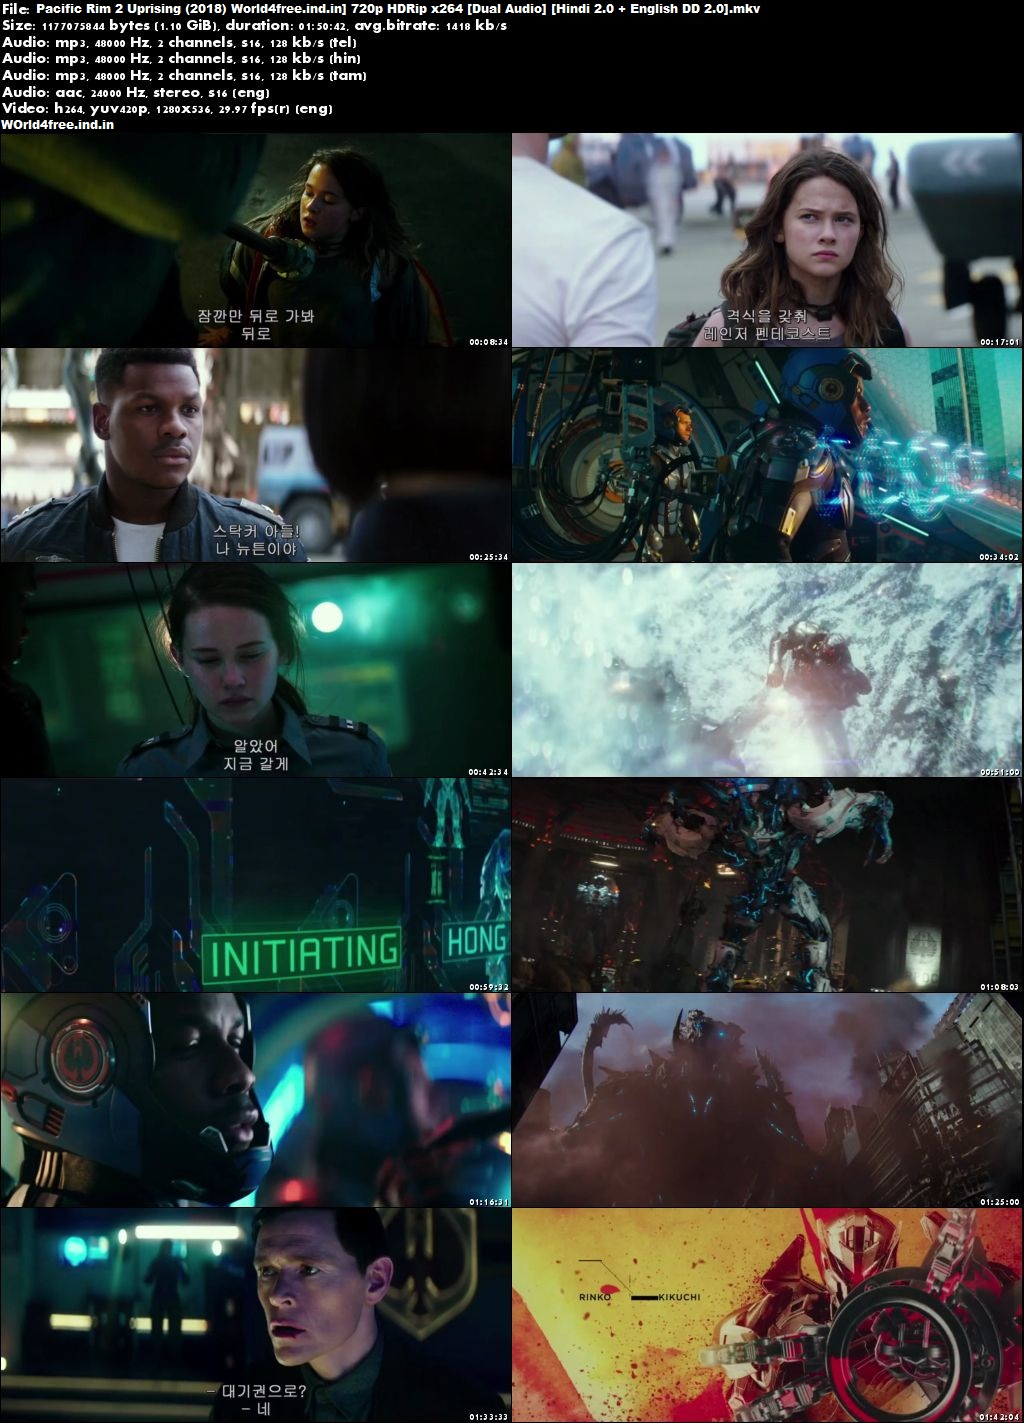 Pacific Rim: Uprising 2018 world4free.ind.in HDRip 720p Hindi Movie Download